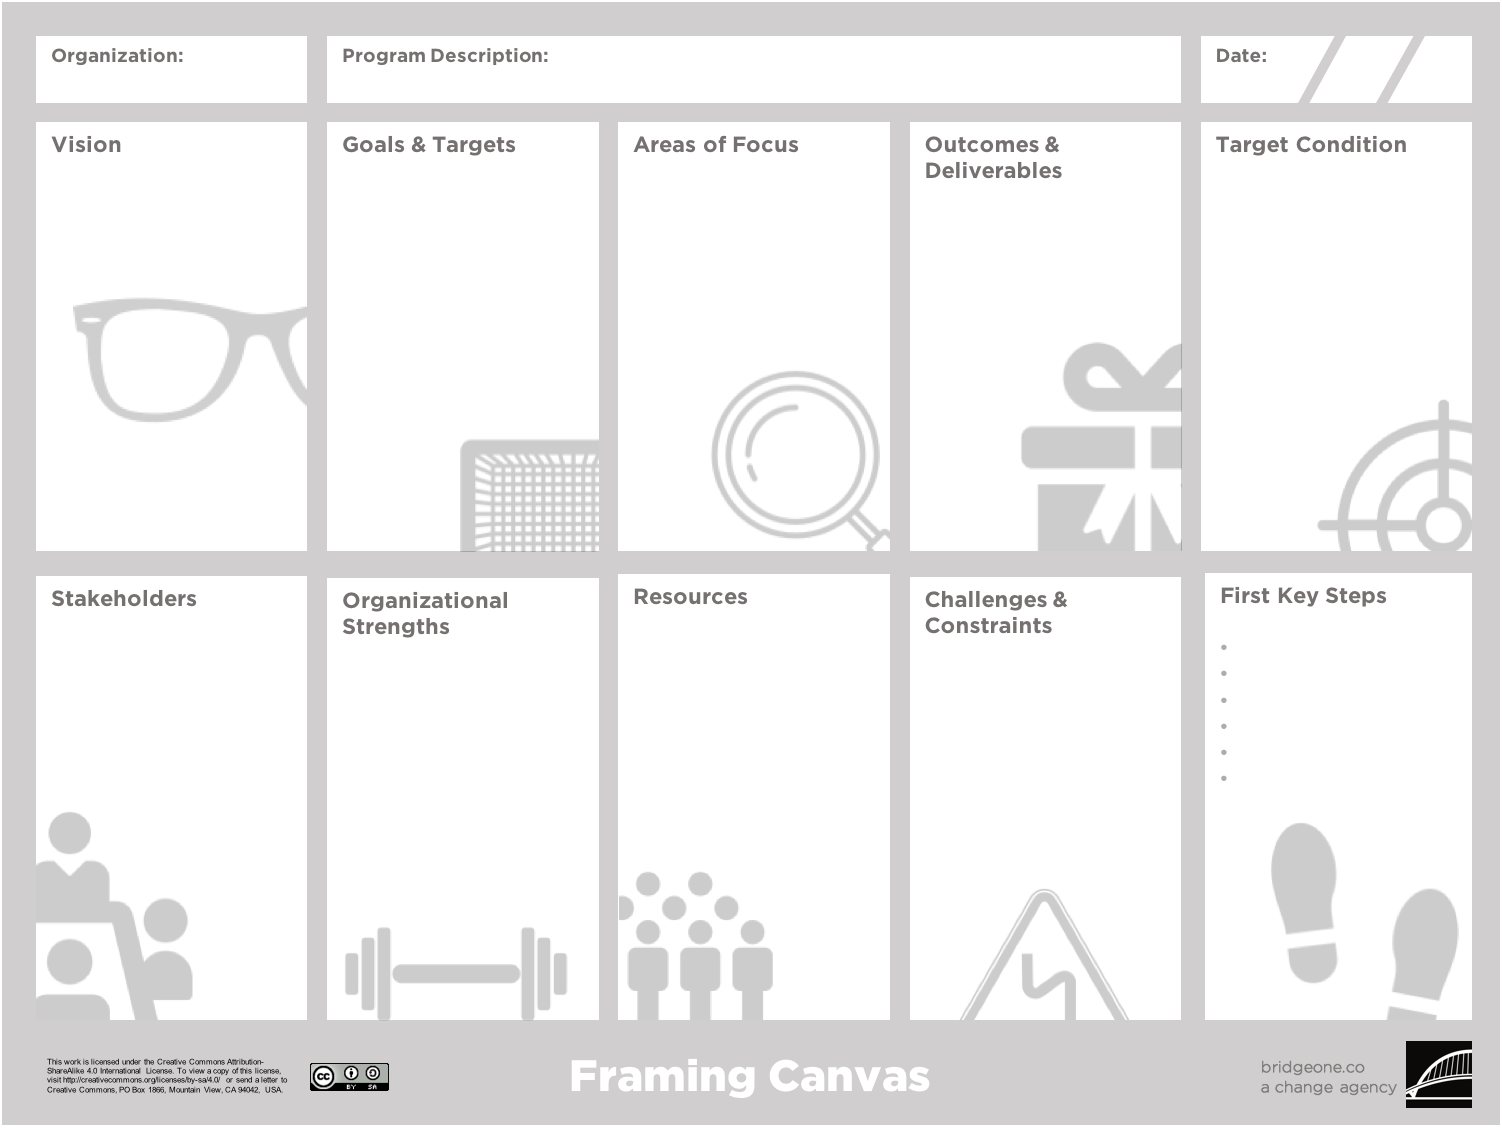 Getting Ready to Get Ready? Moving Out the Door with the Framing Canvas